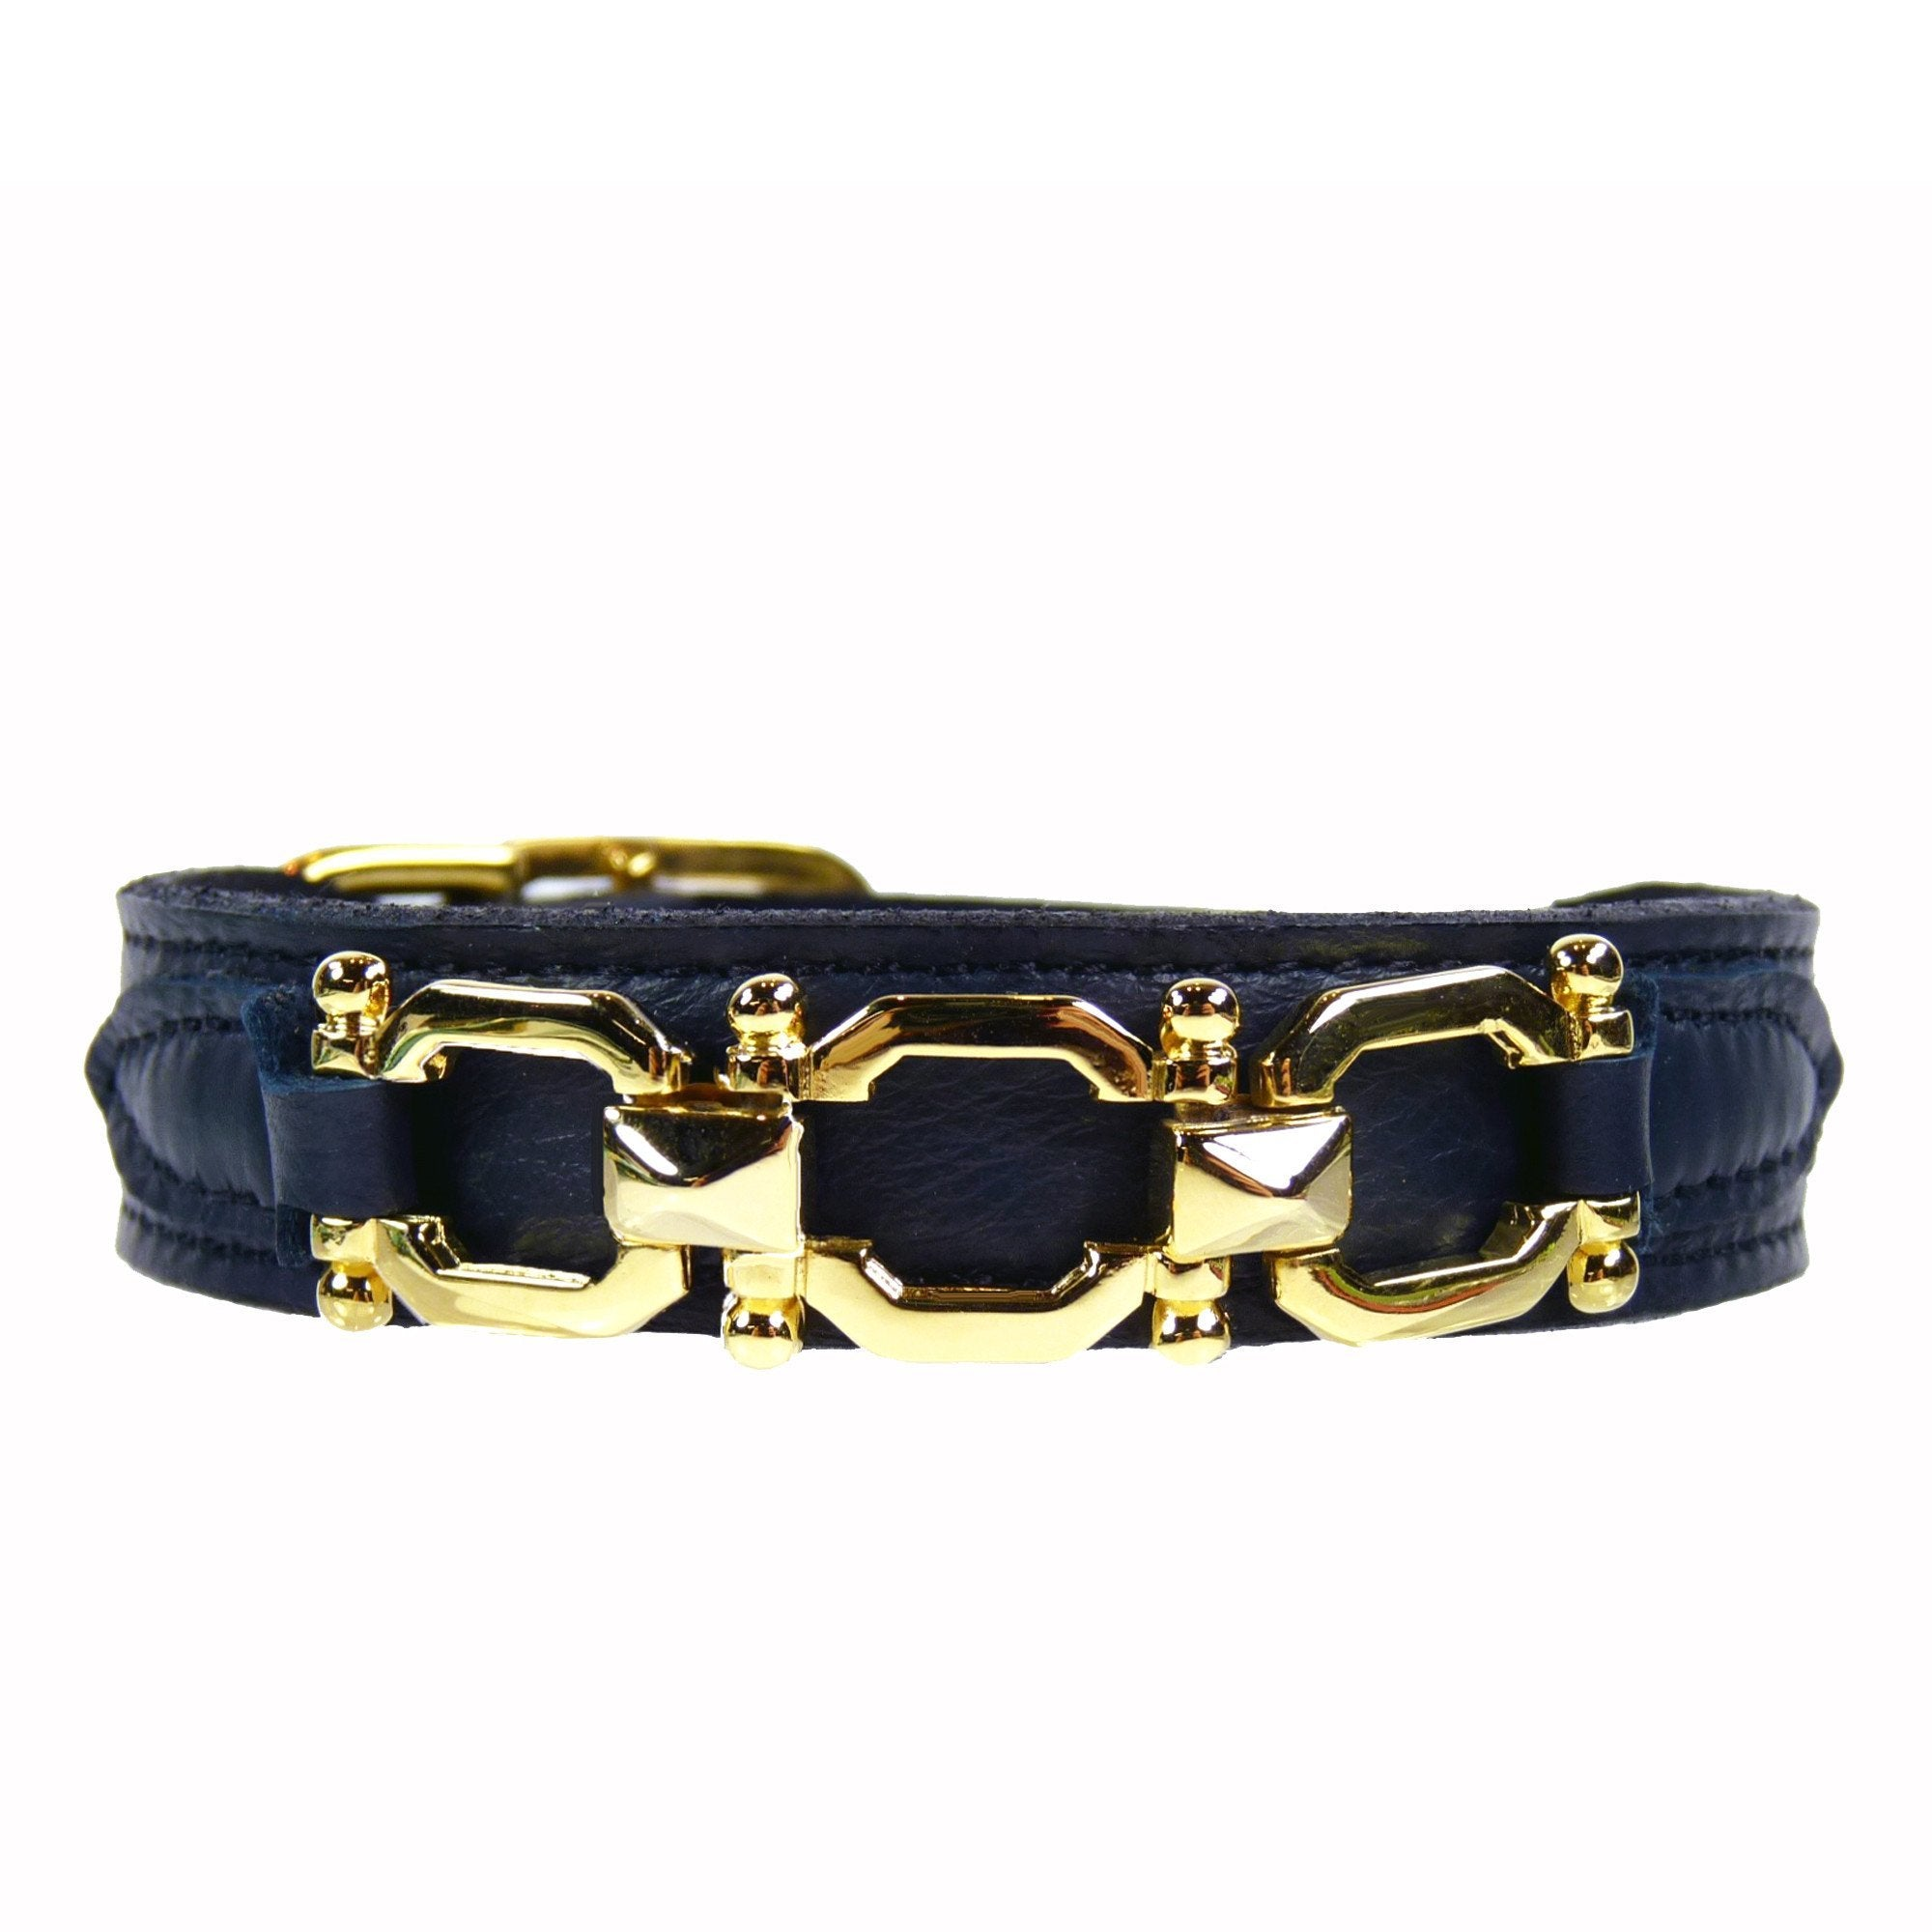 Hartman & Rose Designer Dog Collar in French Navy leather with Angular Gold Three Link Icon